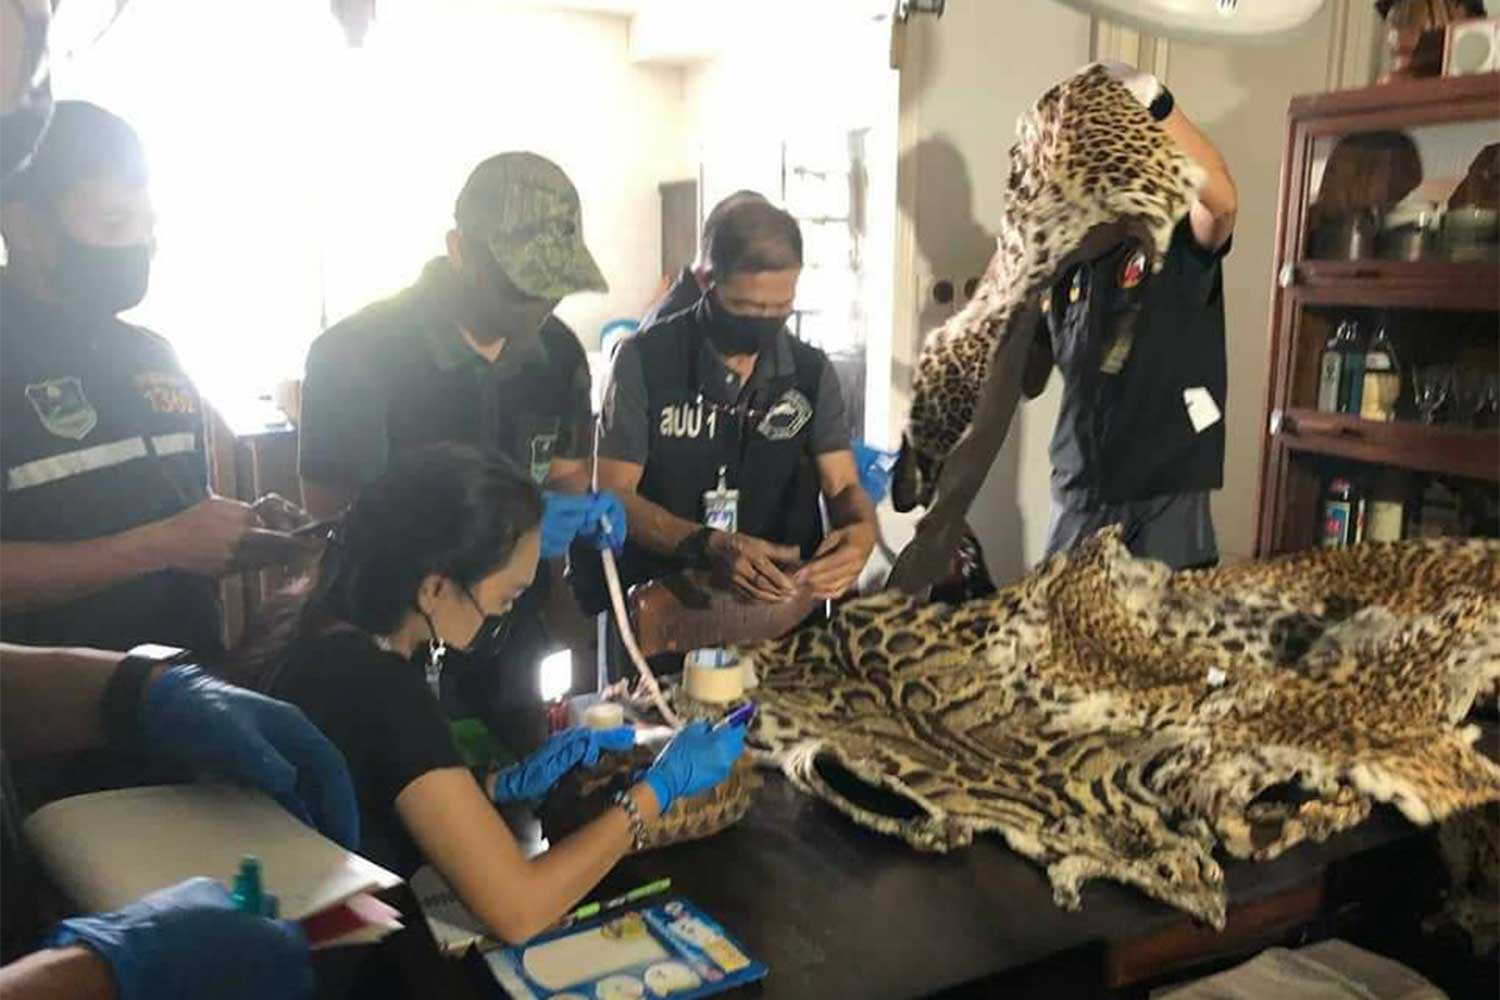 Wildlife officials examine the pelts of protected tigers and leopards, and other items during the raid on a hotel in Sukhumvit area, Bangkok, on Wednesday. (Photo: Natural Resources and Environmental Crime Suppression Division)